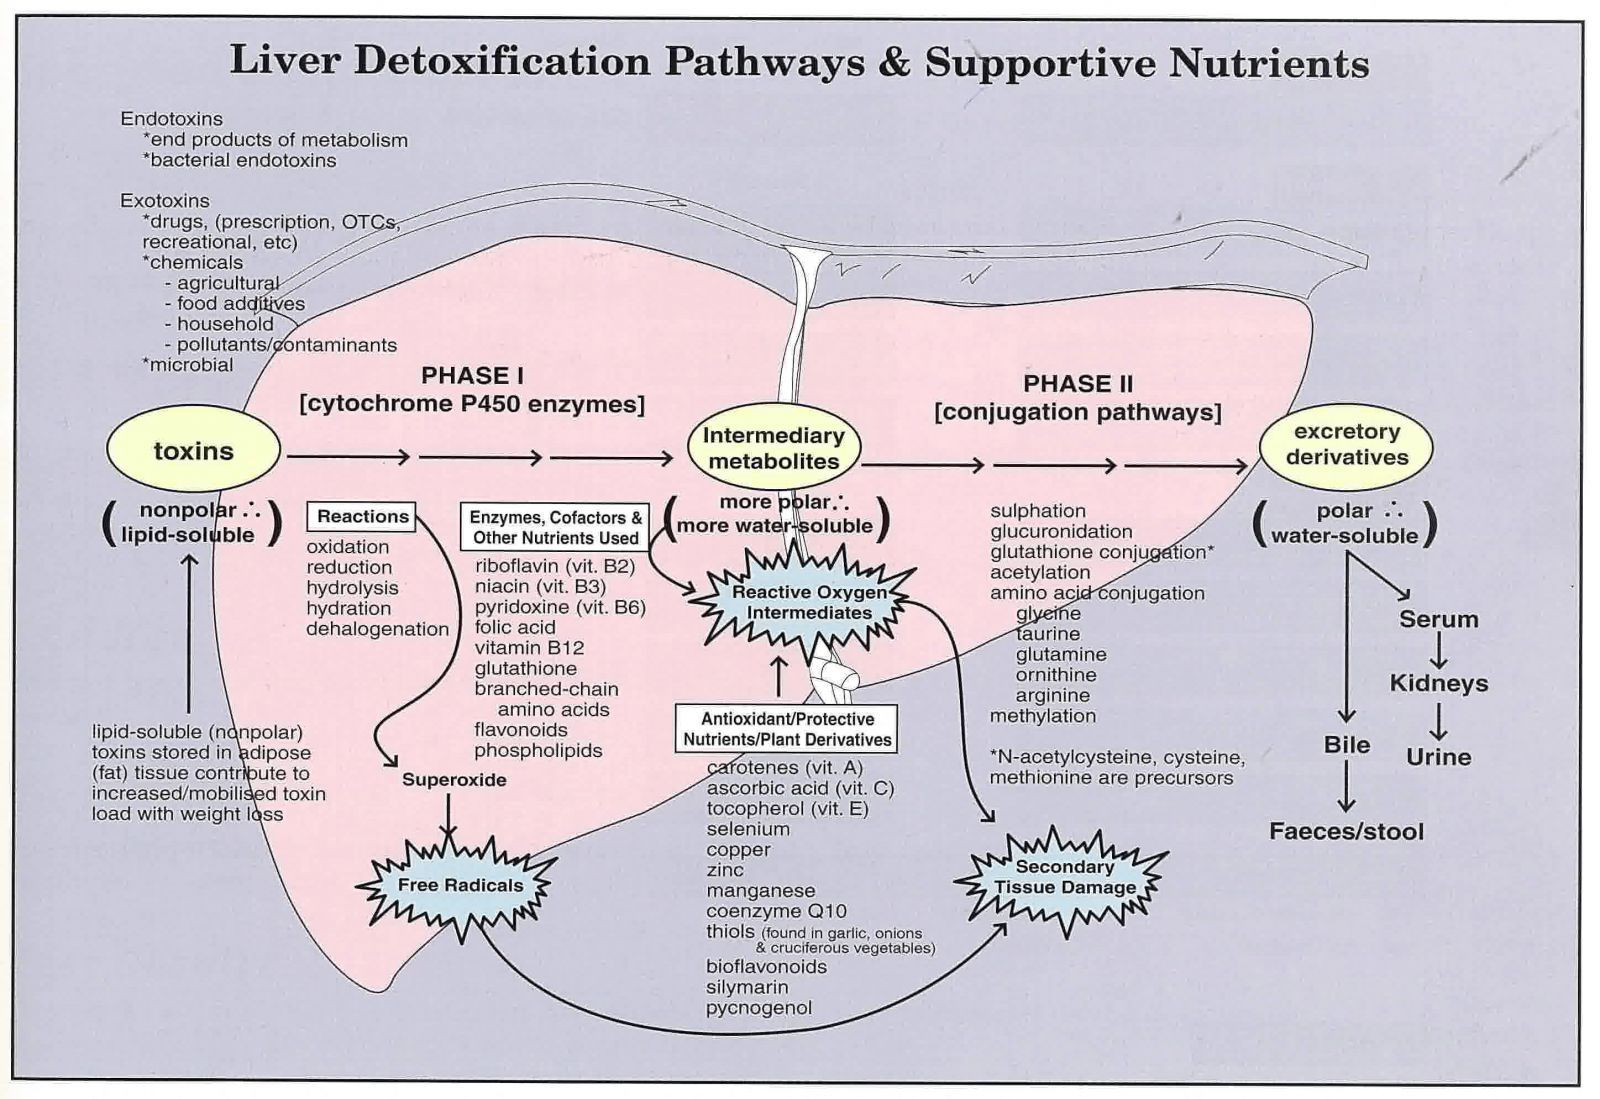 Liver detox pathways diagram one item missed in protective liver detox pathways diagram one item missed in protective nutrients n acetyl cysteine a liver repairer used by hospitals nac ccuart Gallery